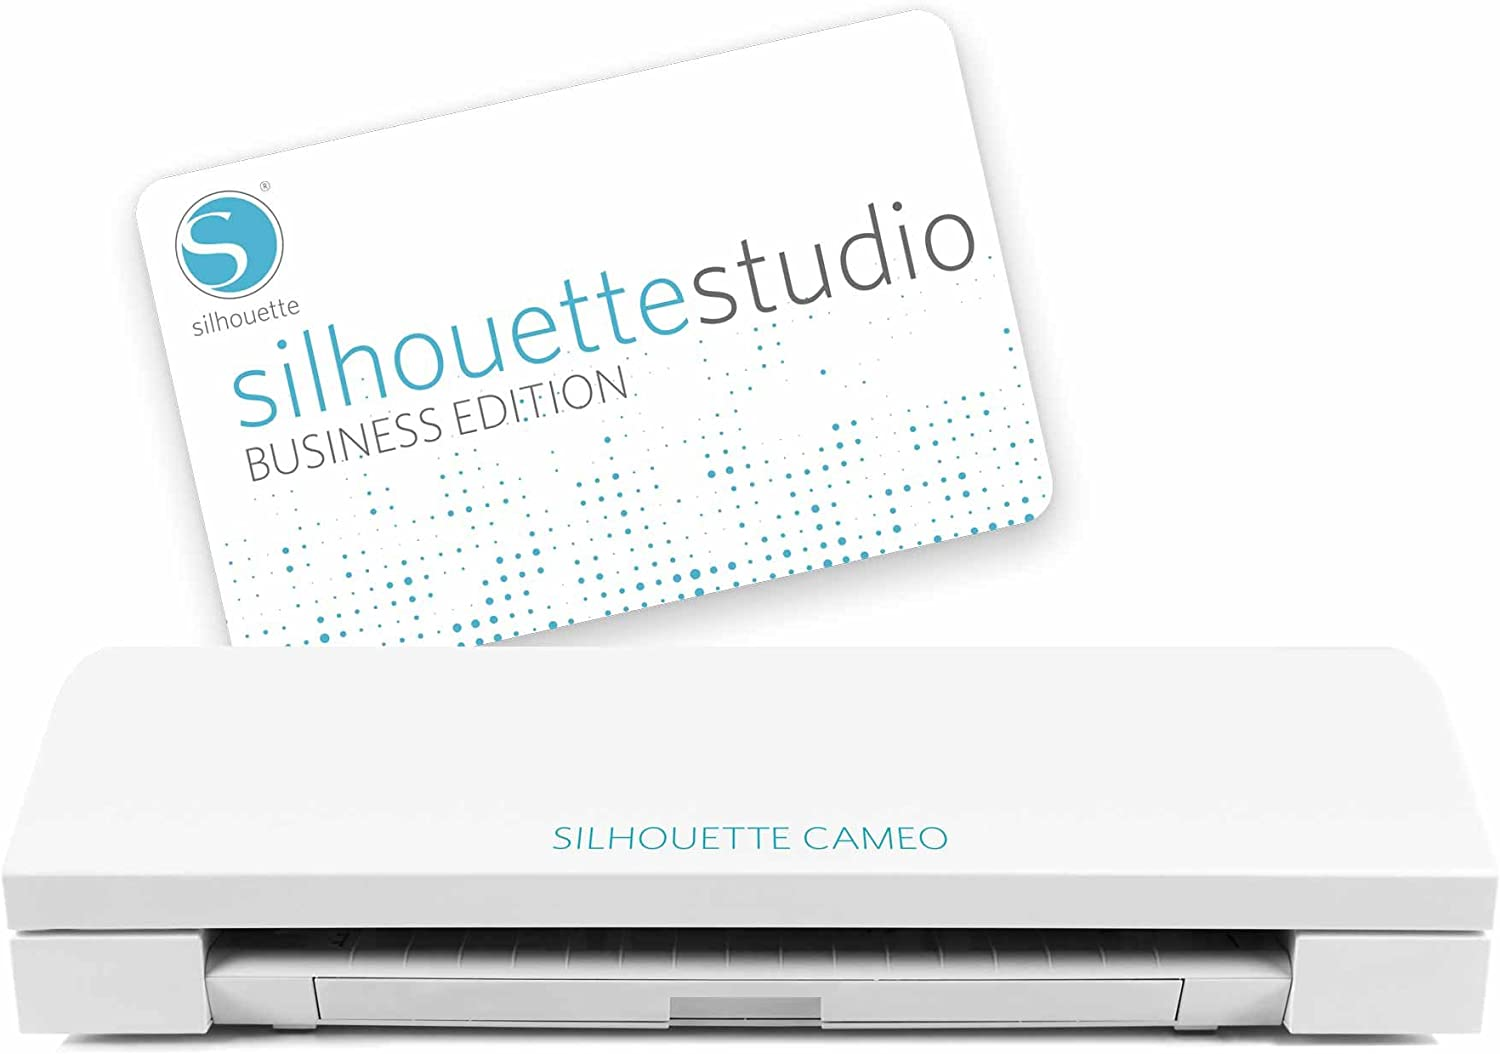 Silhouette Cameo 3 + Business Edition Software: Amazon.es: Informática